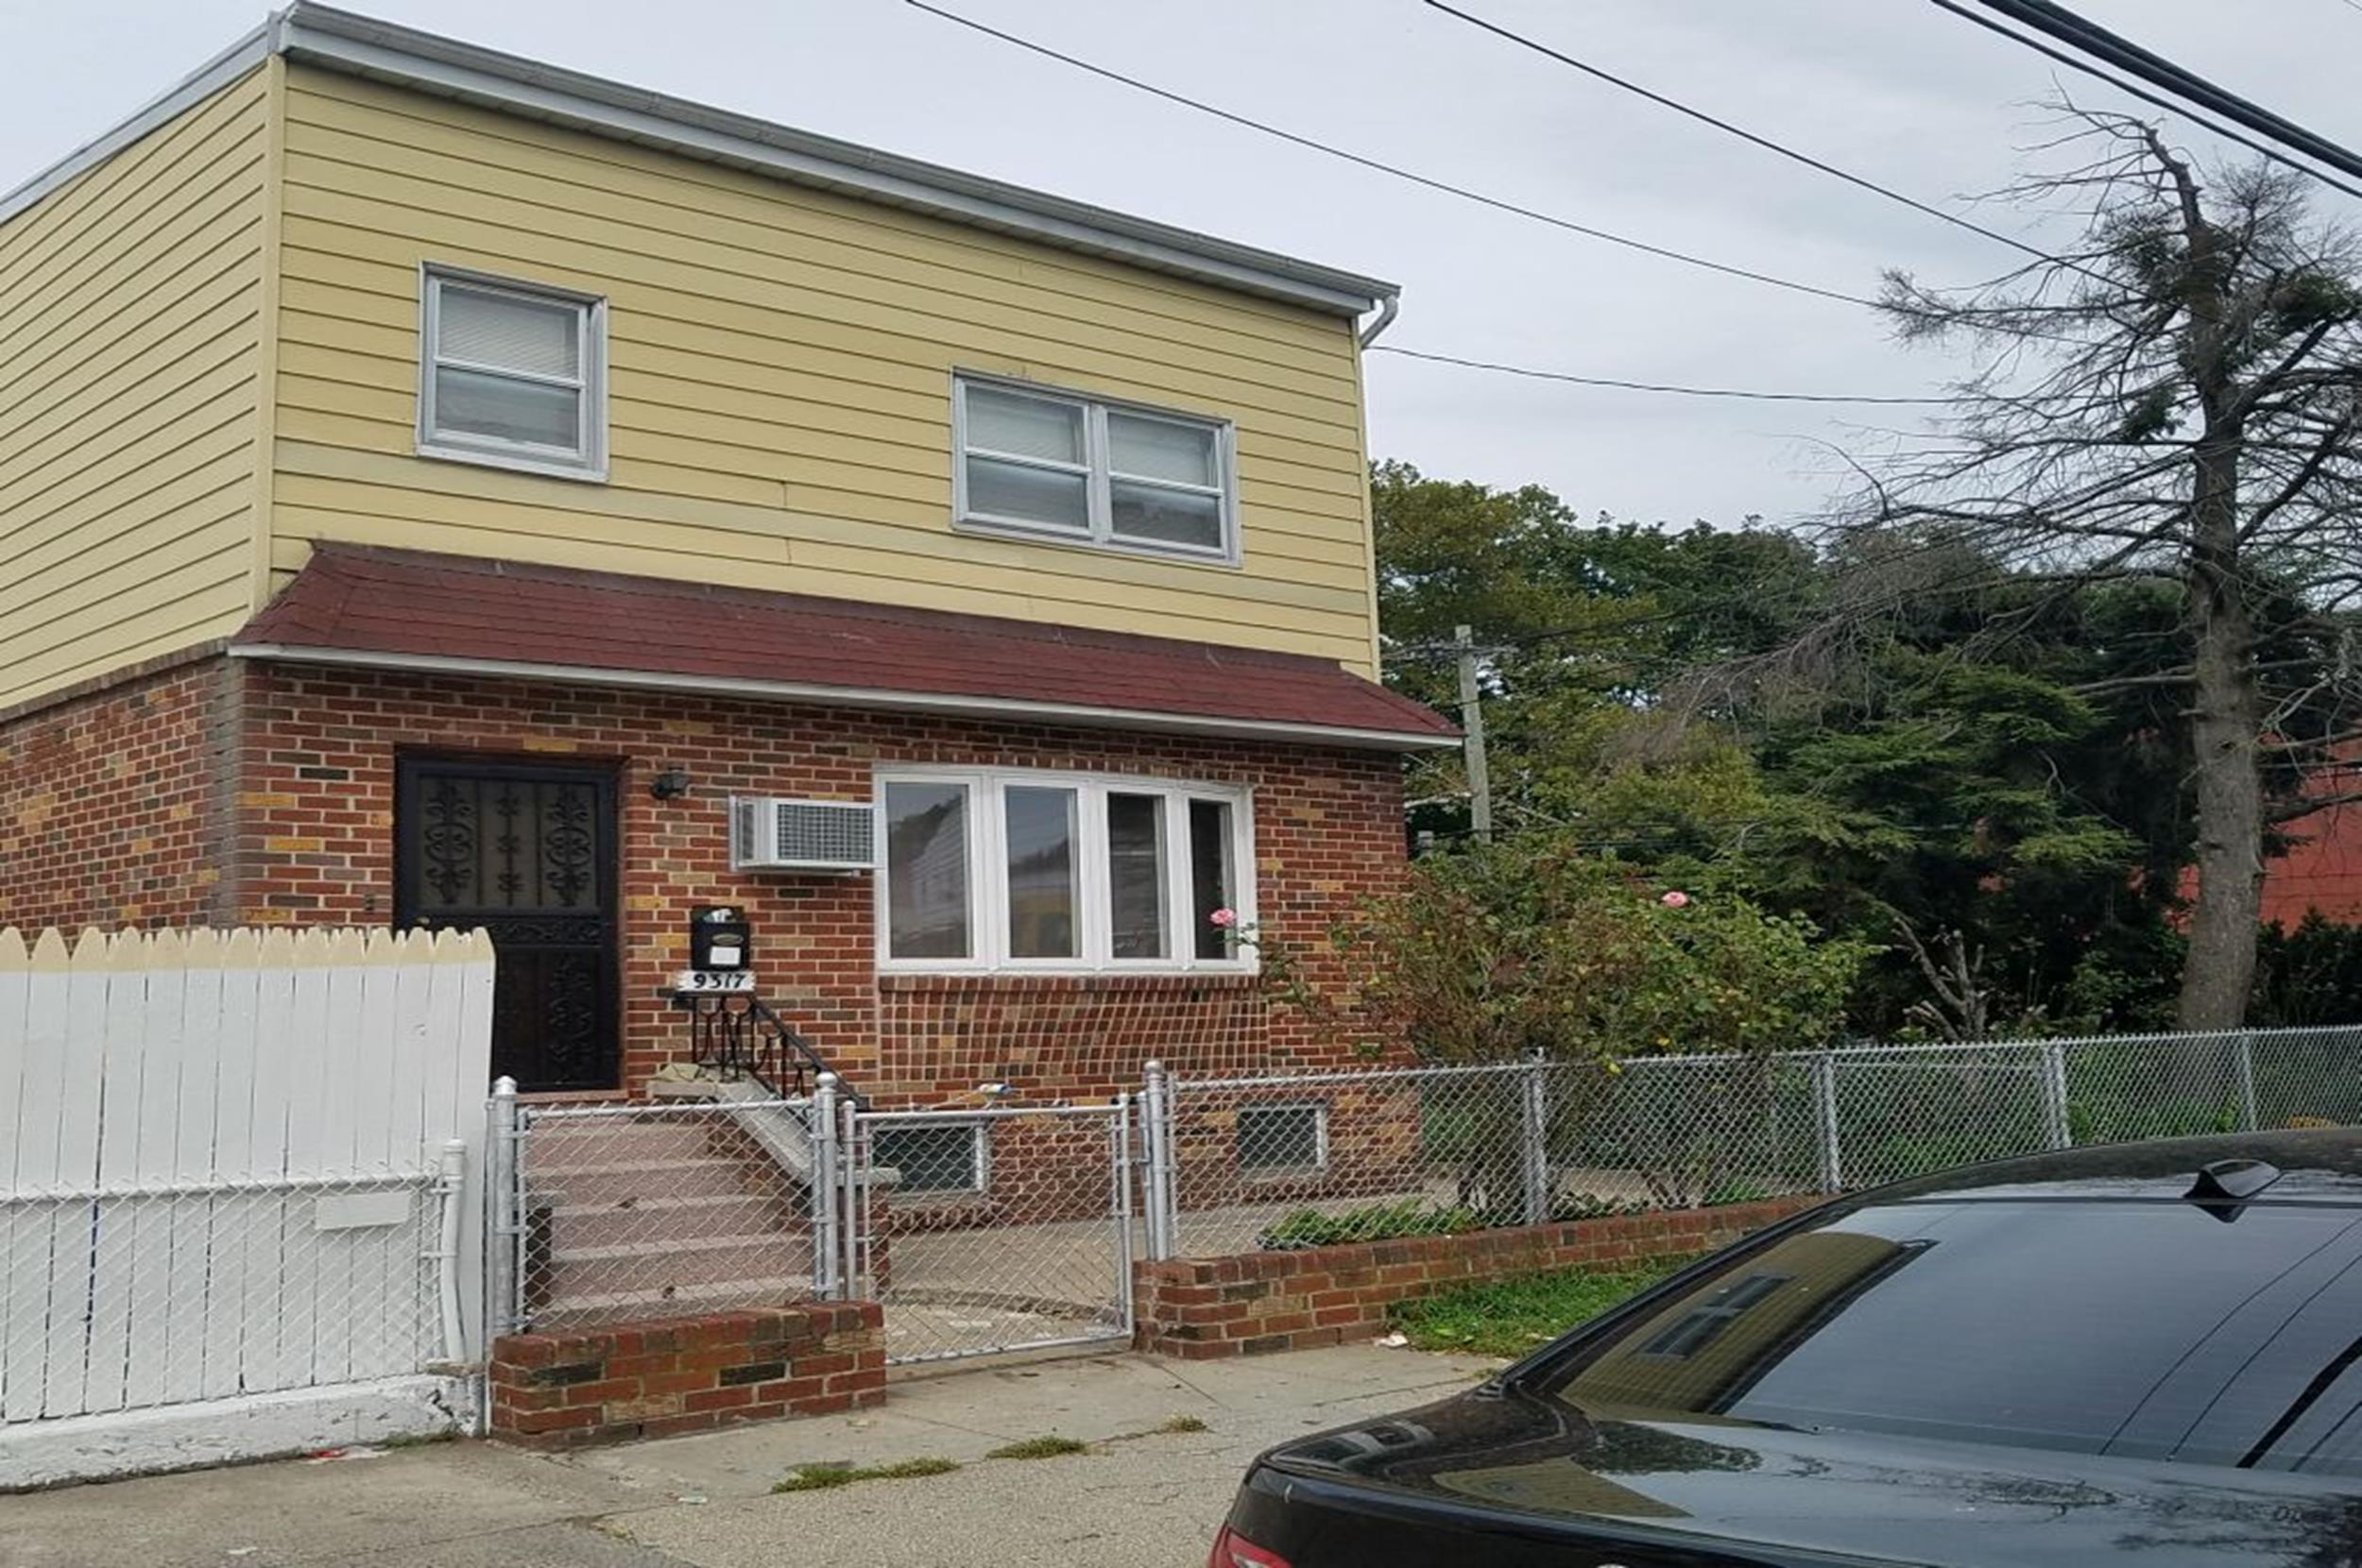 detached 2 family home in Canarsie Brooklyn